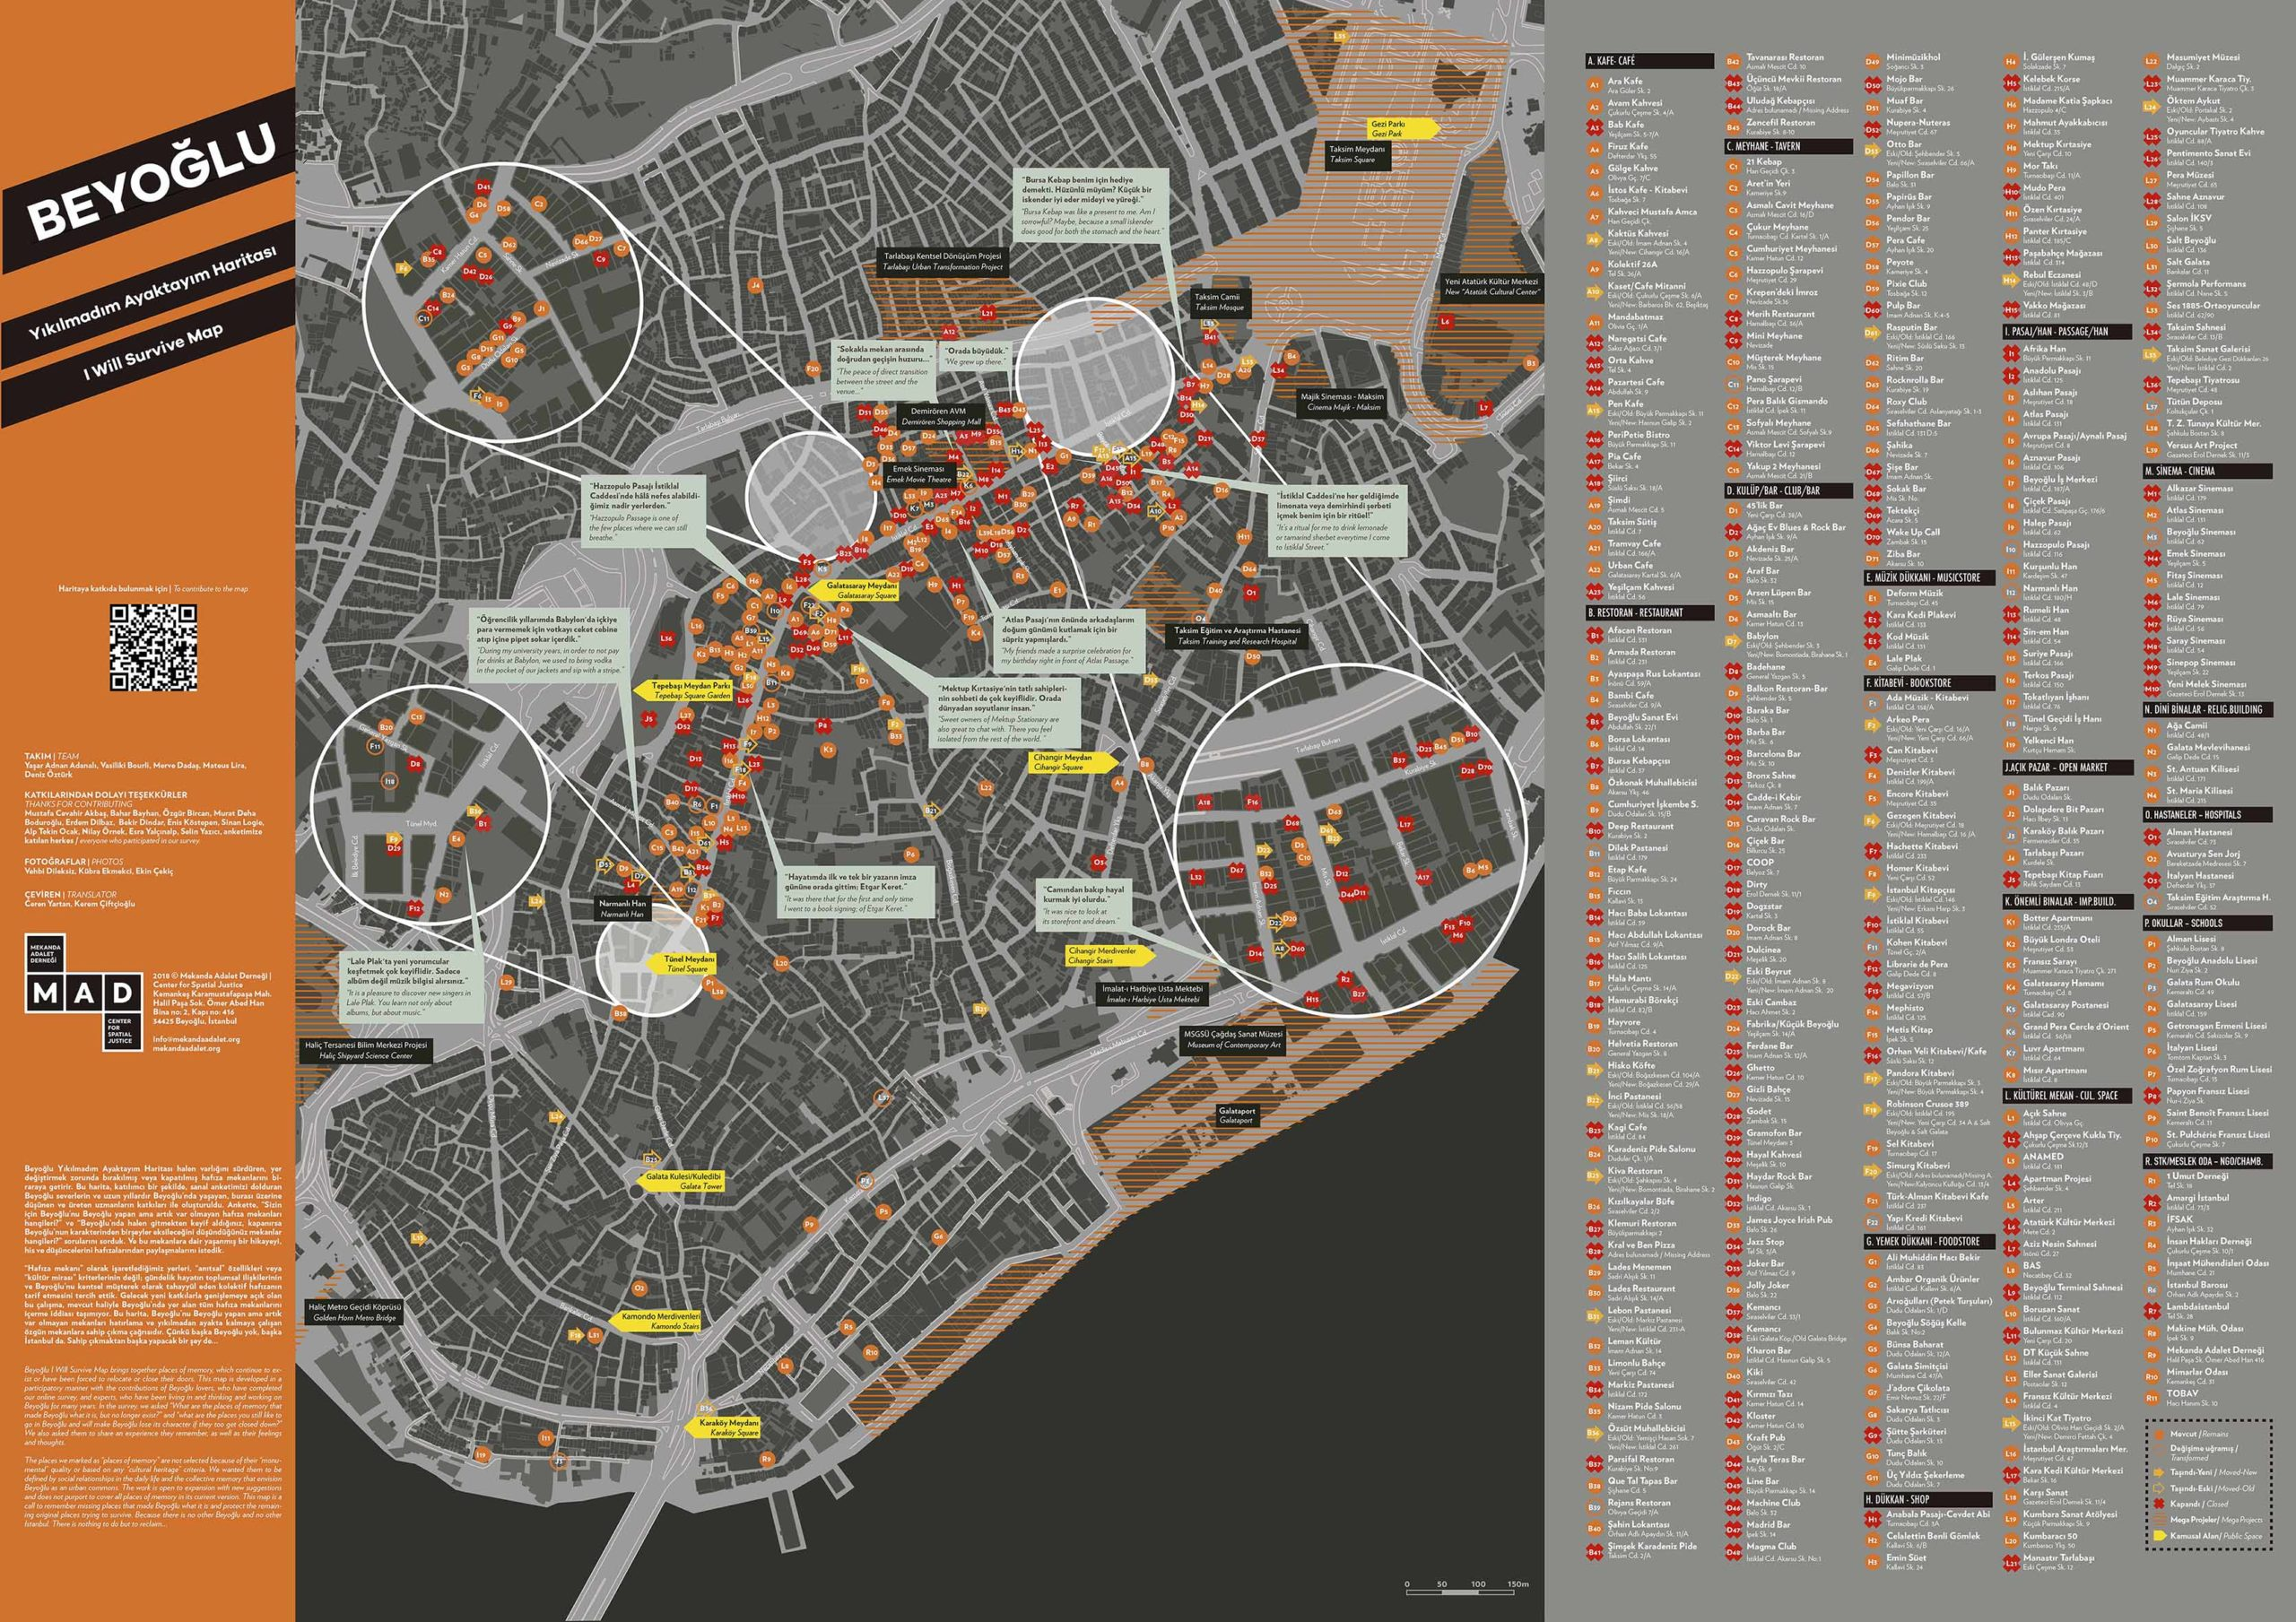 Beyoglu, I Will Survive! A map of collective memory in the context of radical urban transformations in Istanbul